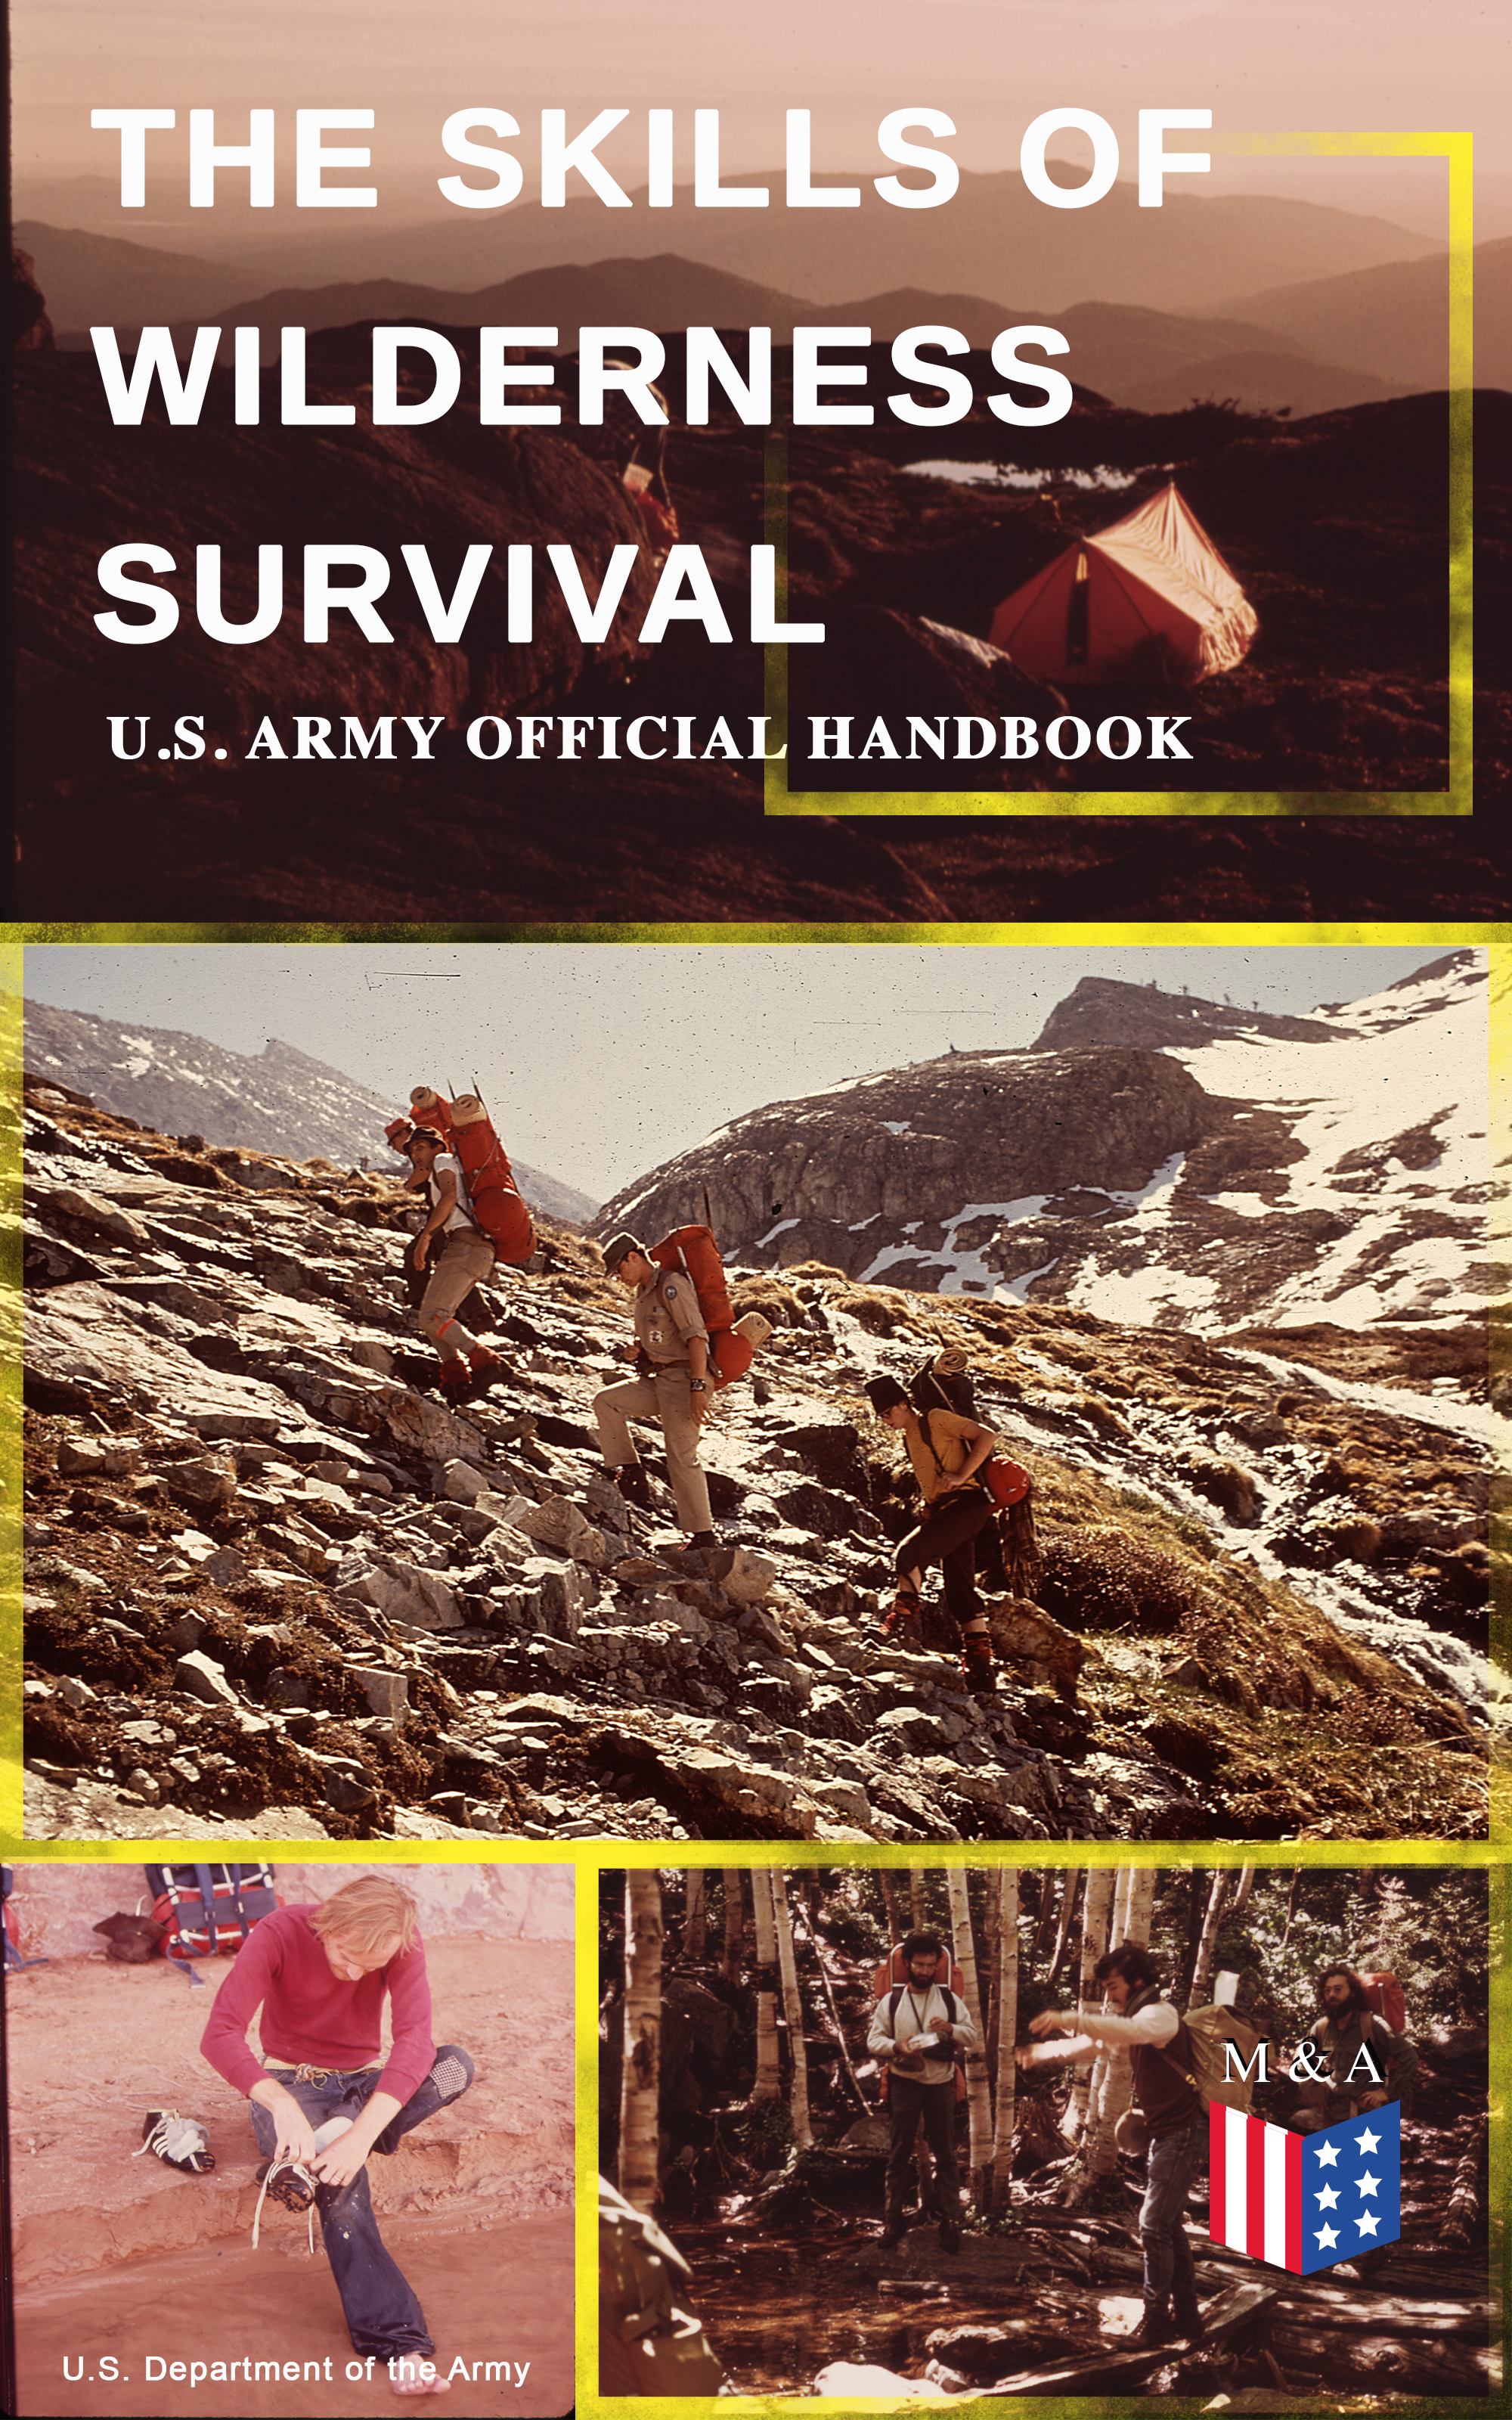 U.S. Department of the Army The Skills of Wilderness Survival - U.S. Army Official Handbook handbook of epistemic logic